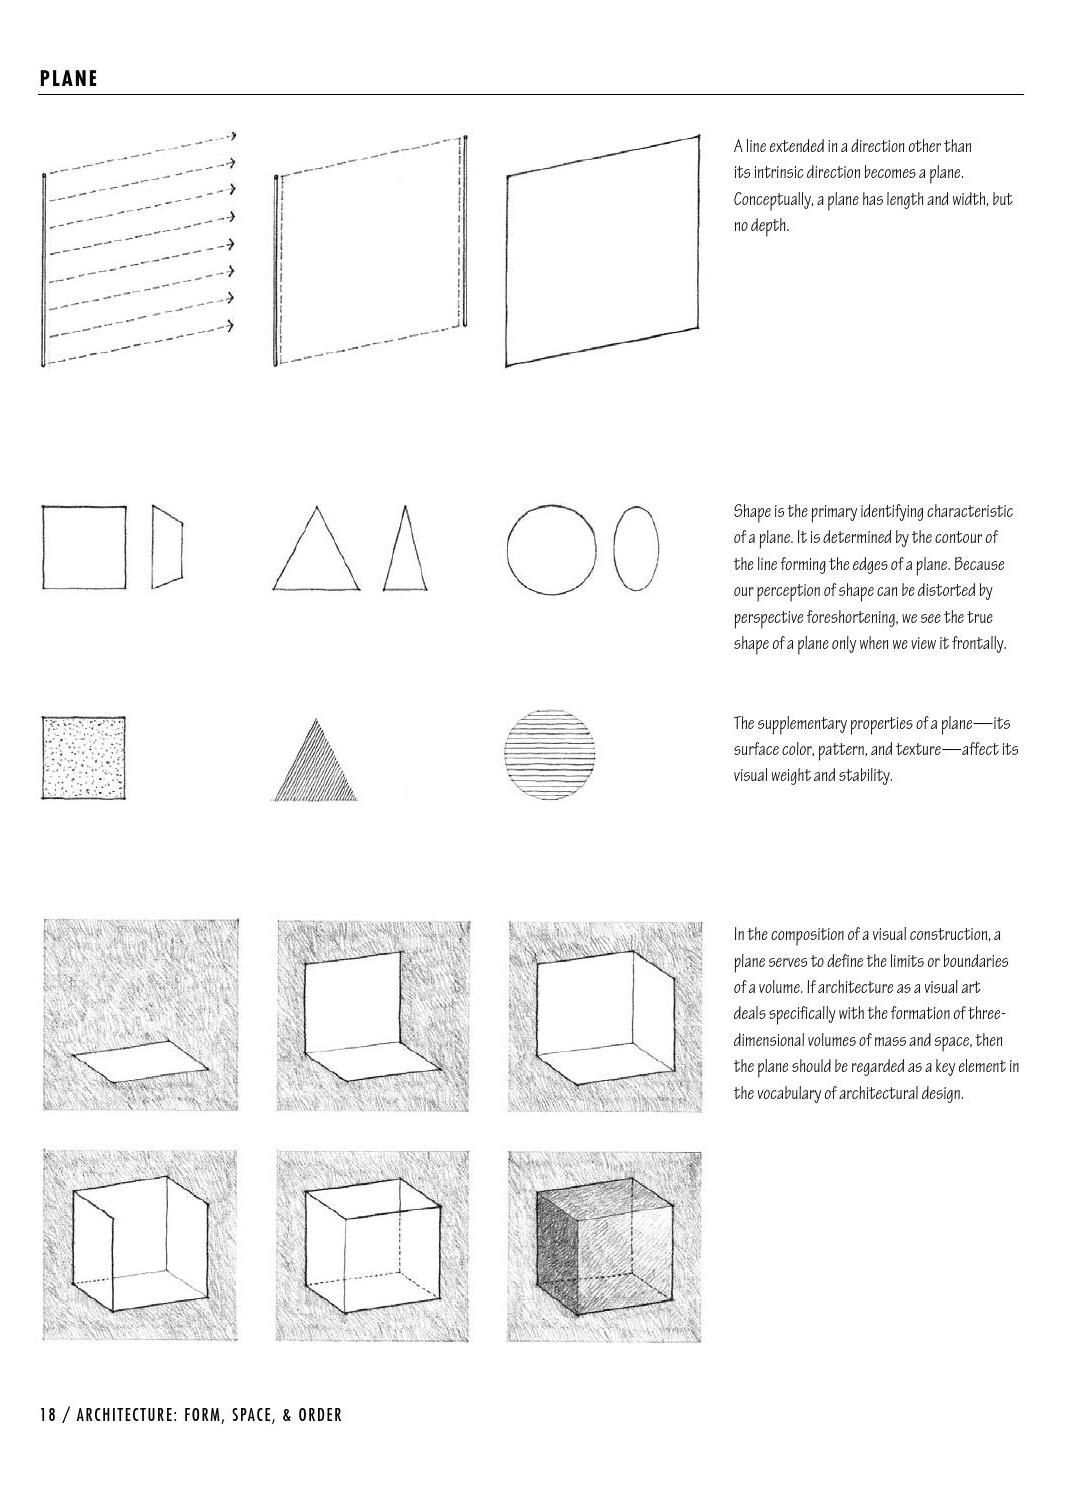 Clippedonissuu From Francis D K Ching Architecture Form